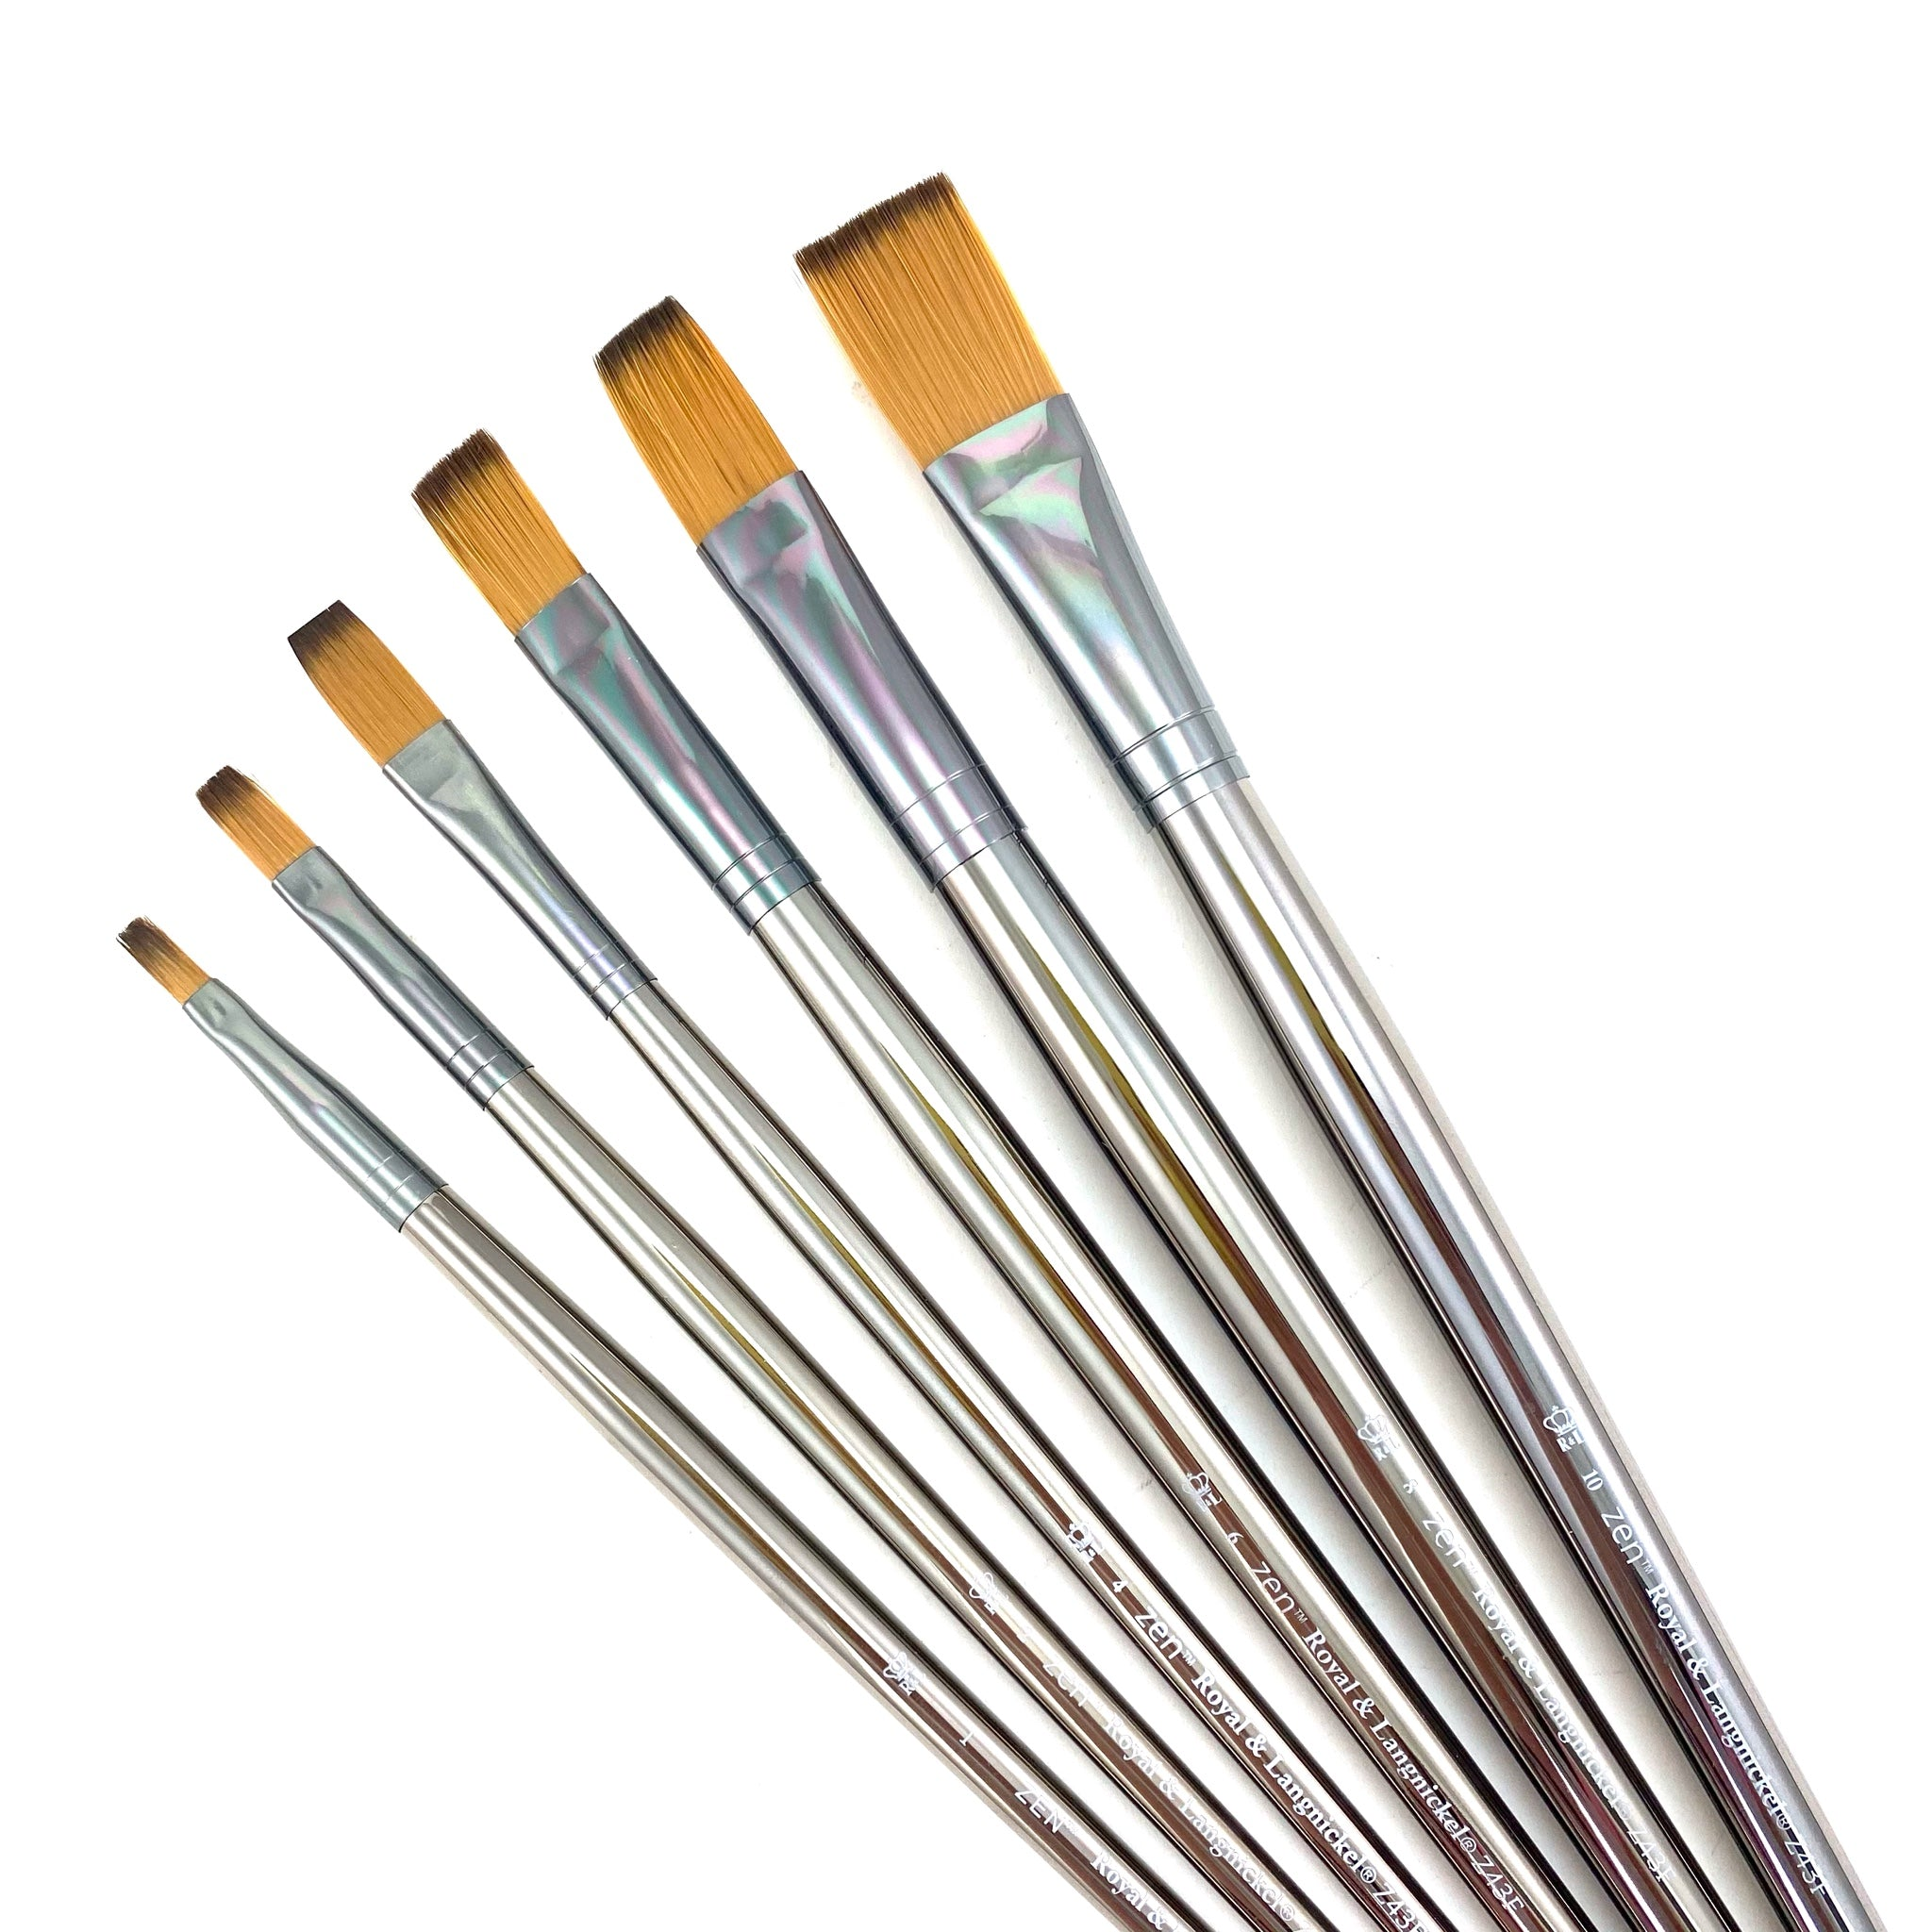 Royal & Langnickle Zen Long Handle Brushes - 43 Series - Flat / 12 by Royal & Langnickle - K. A. Artist Shop